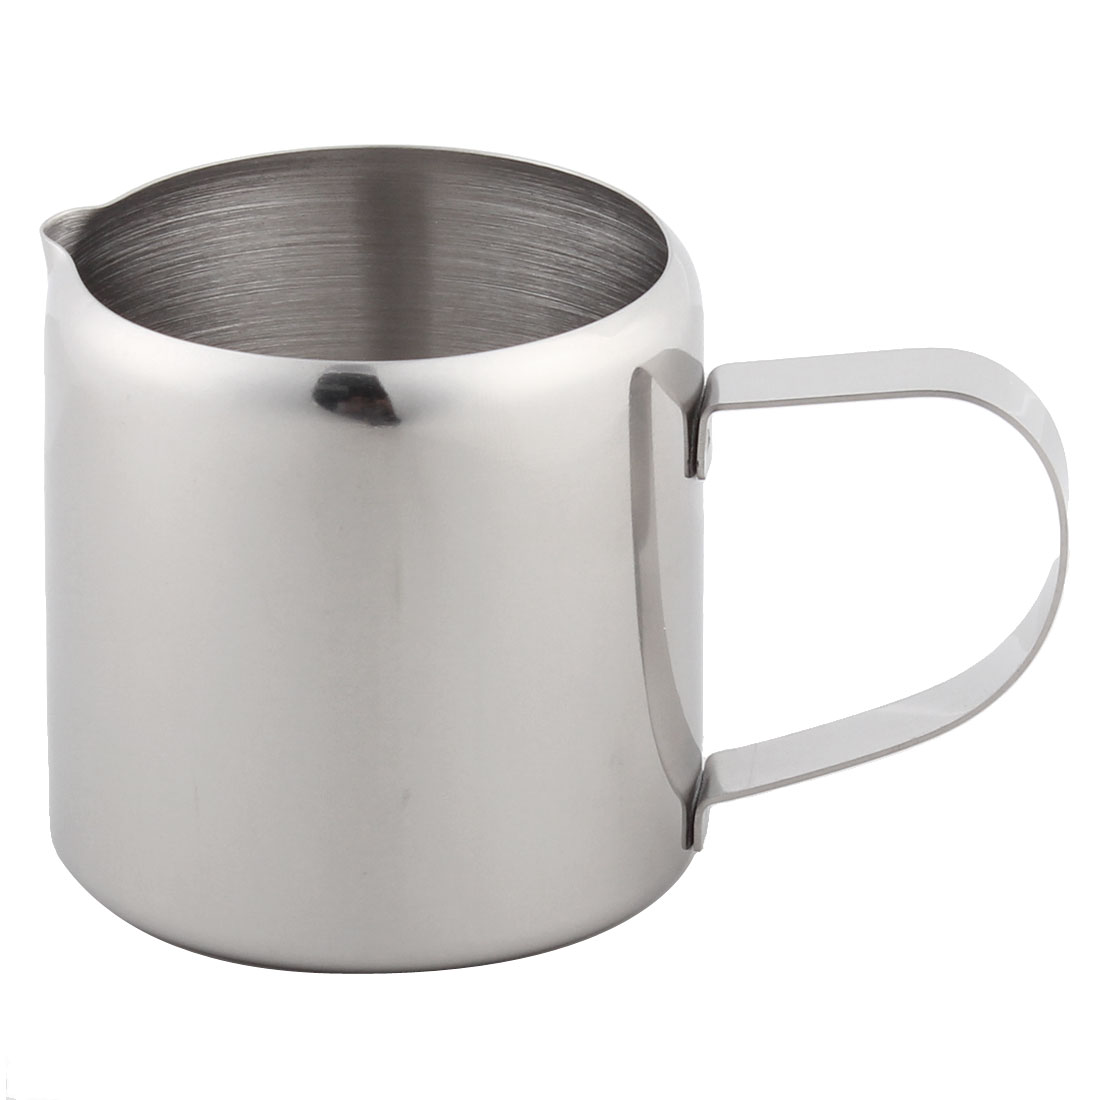 Kitchen Laboratory Stainless Steel Handle Water Liquid Measurement Cup Mug 5 Ounce